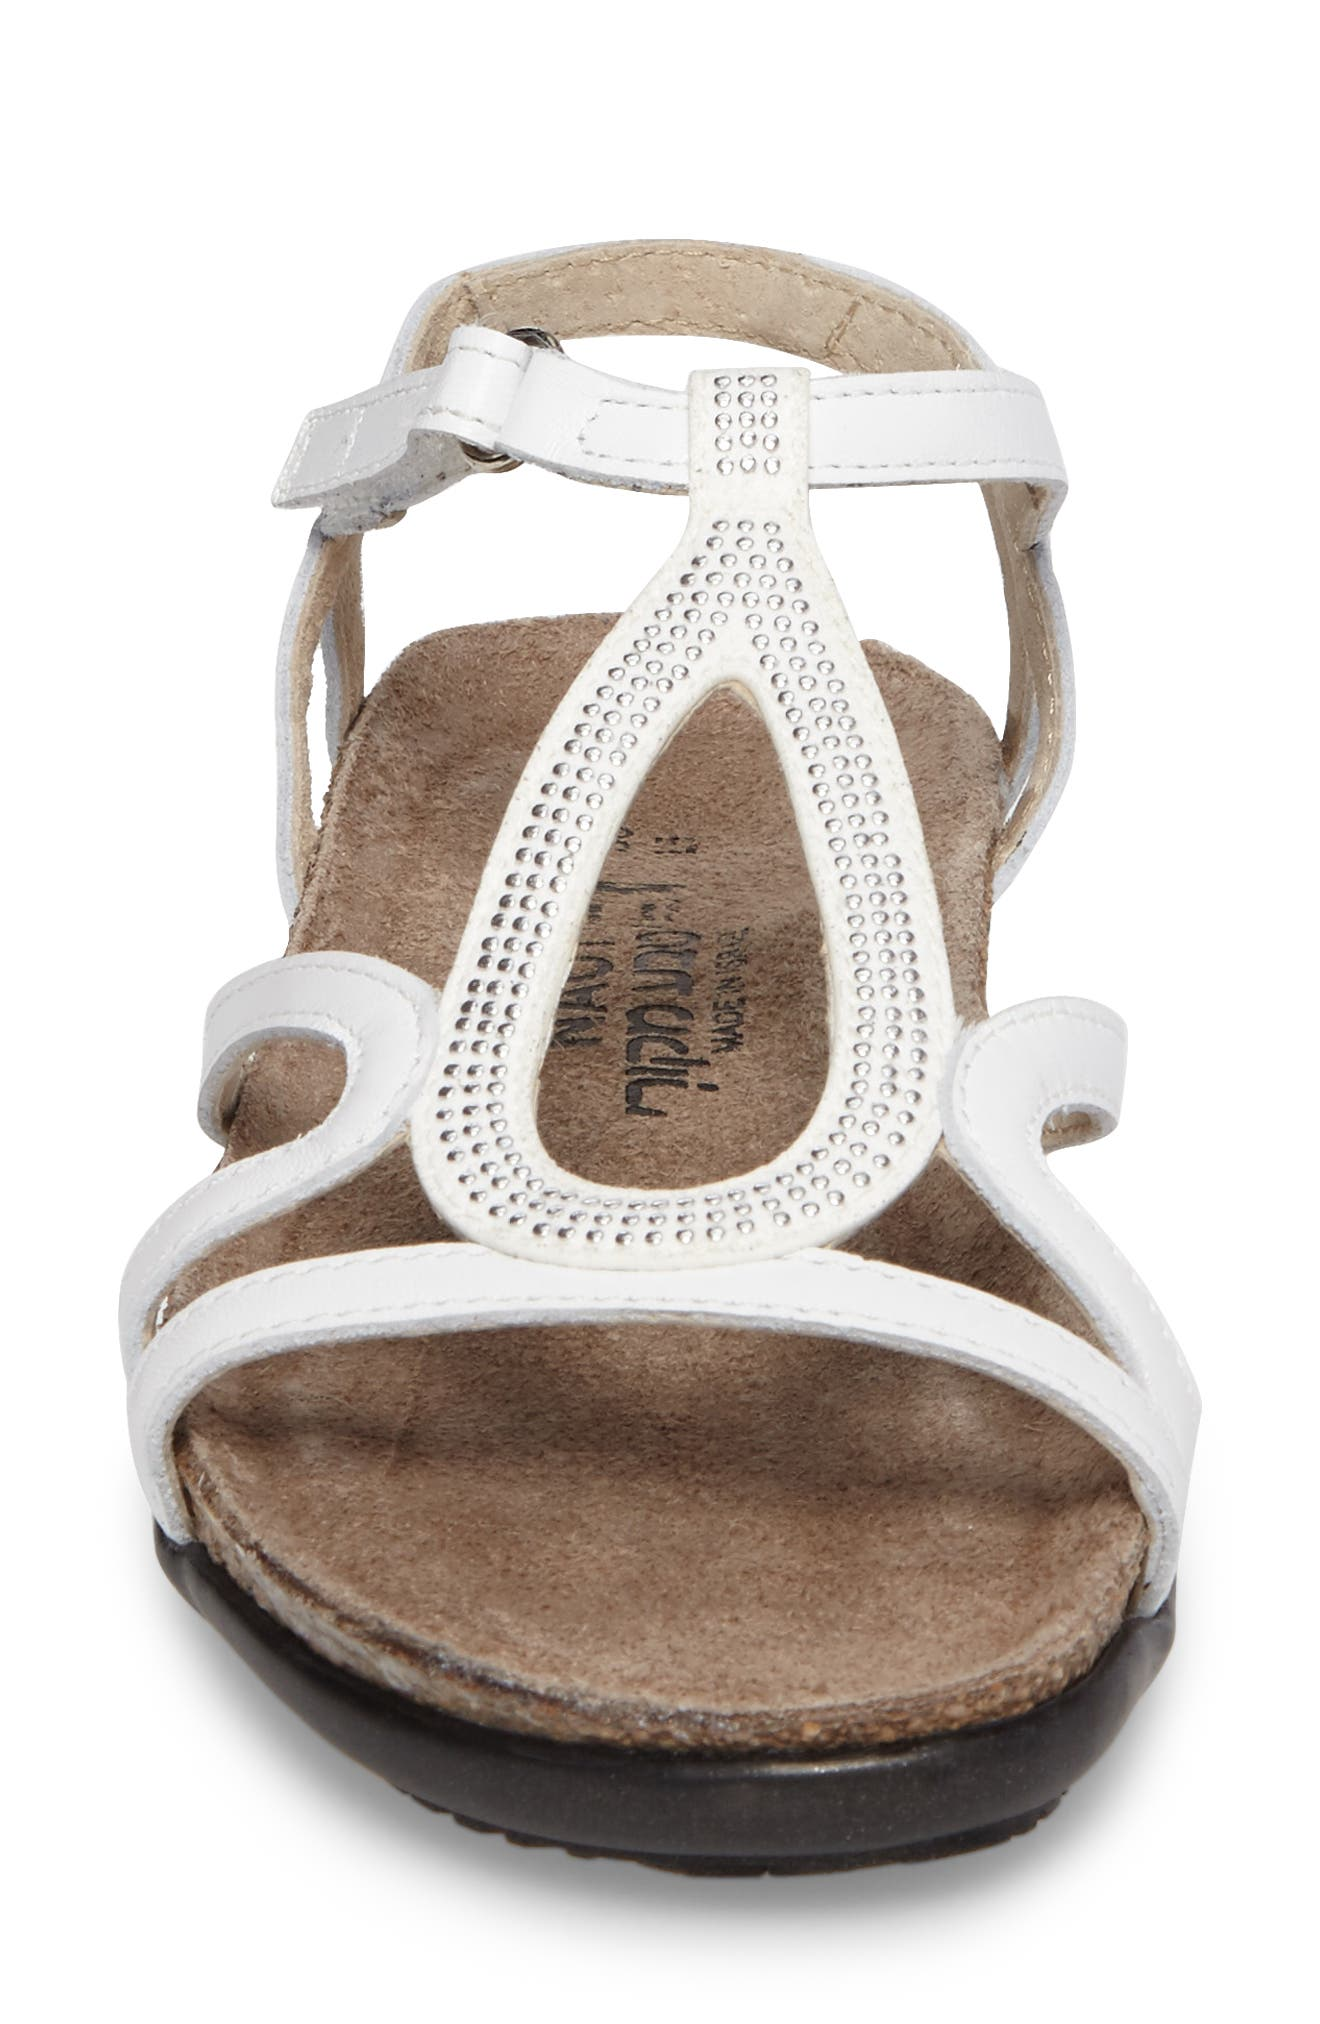 Tamara Studded Strappy Sandal,                             Alternate thumbnail 4, color,                             White Leather